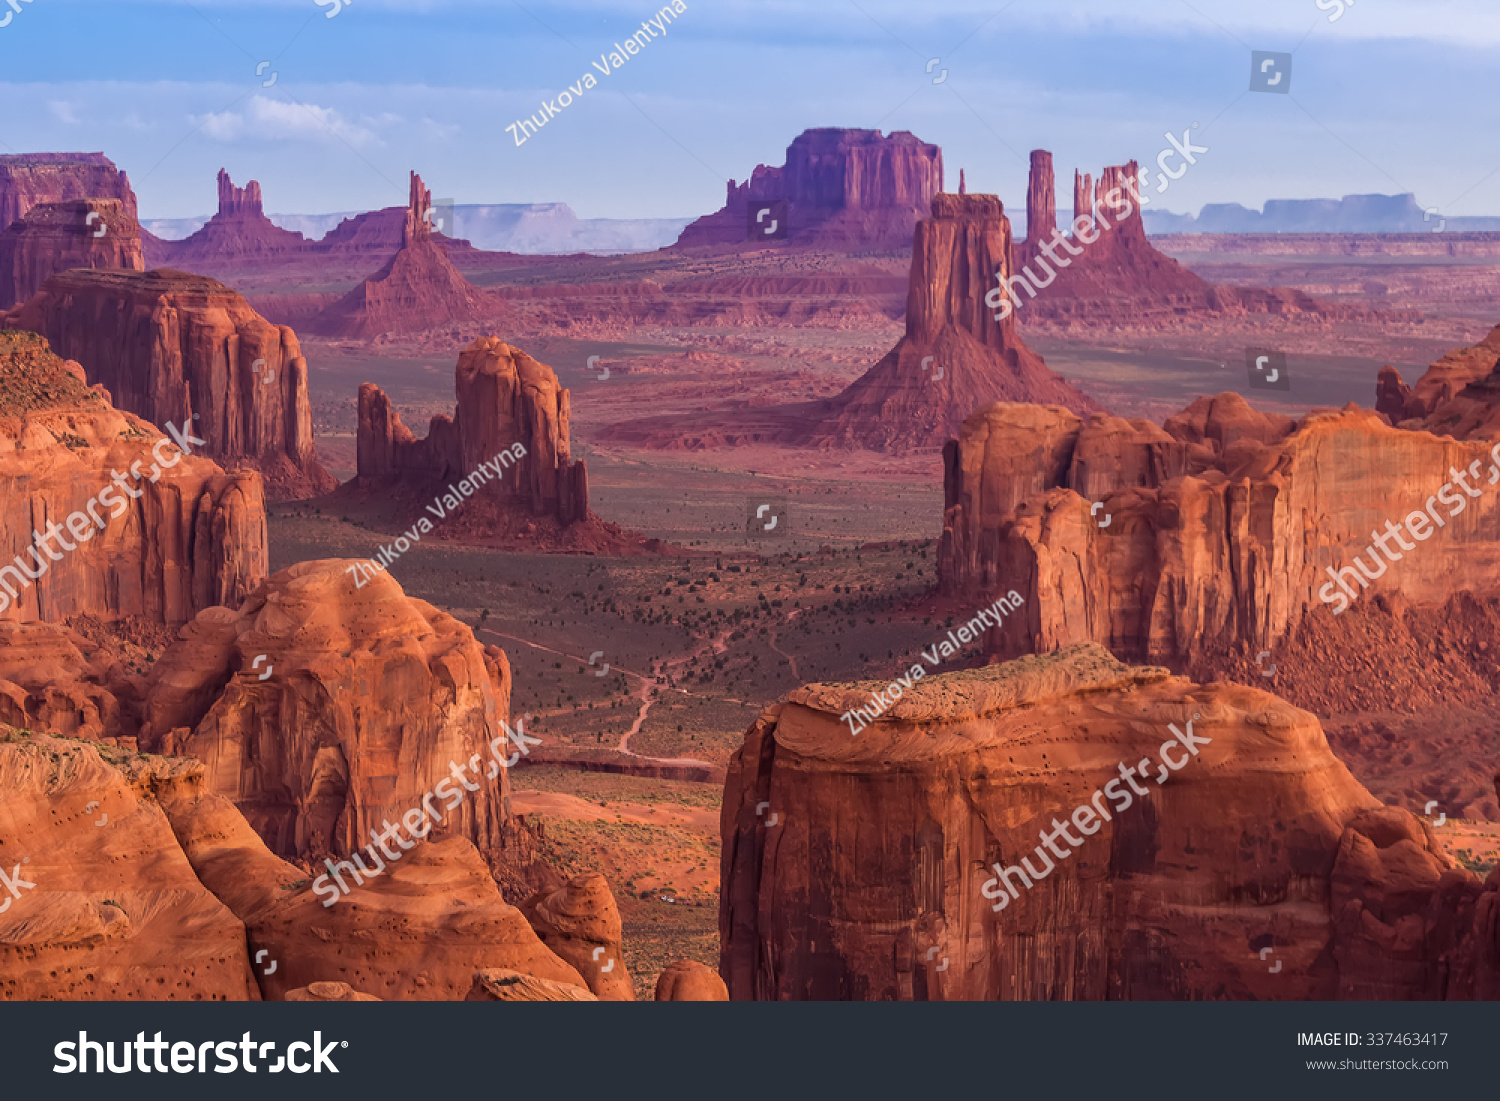 View from Hunts Mesa, Monument Valley, Arizona #337463417